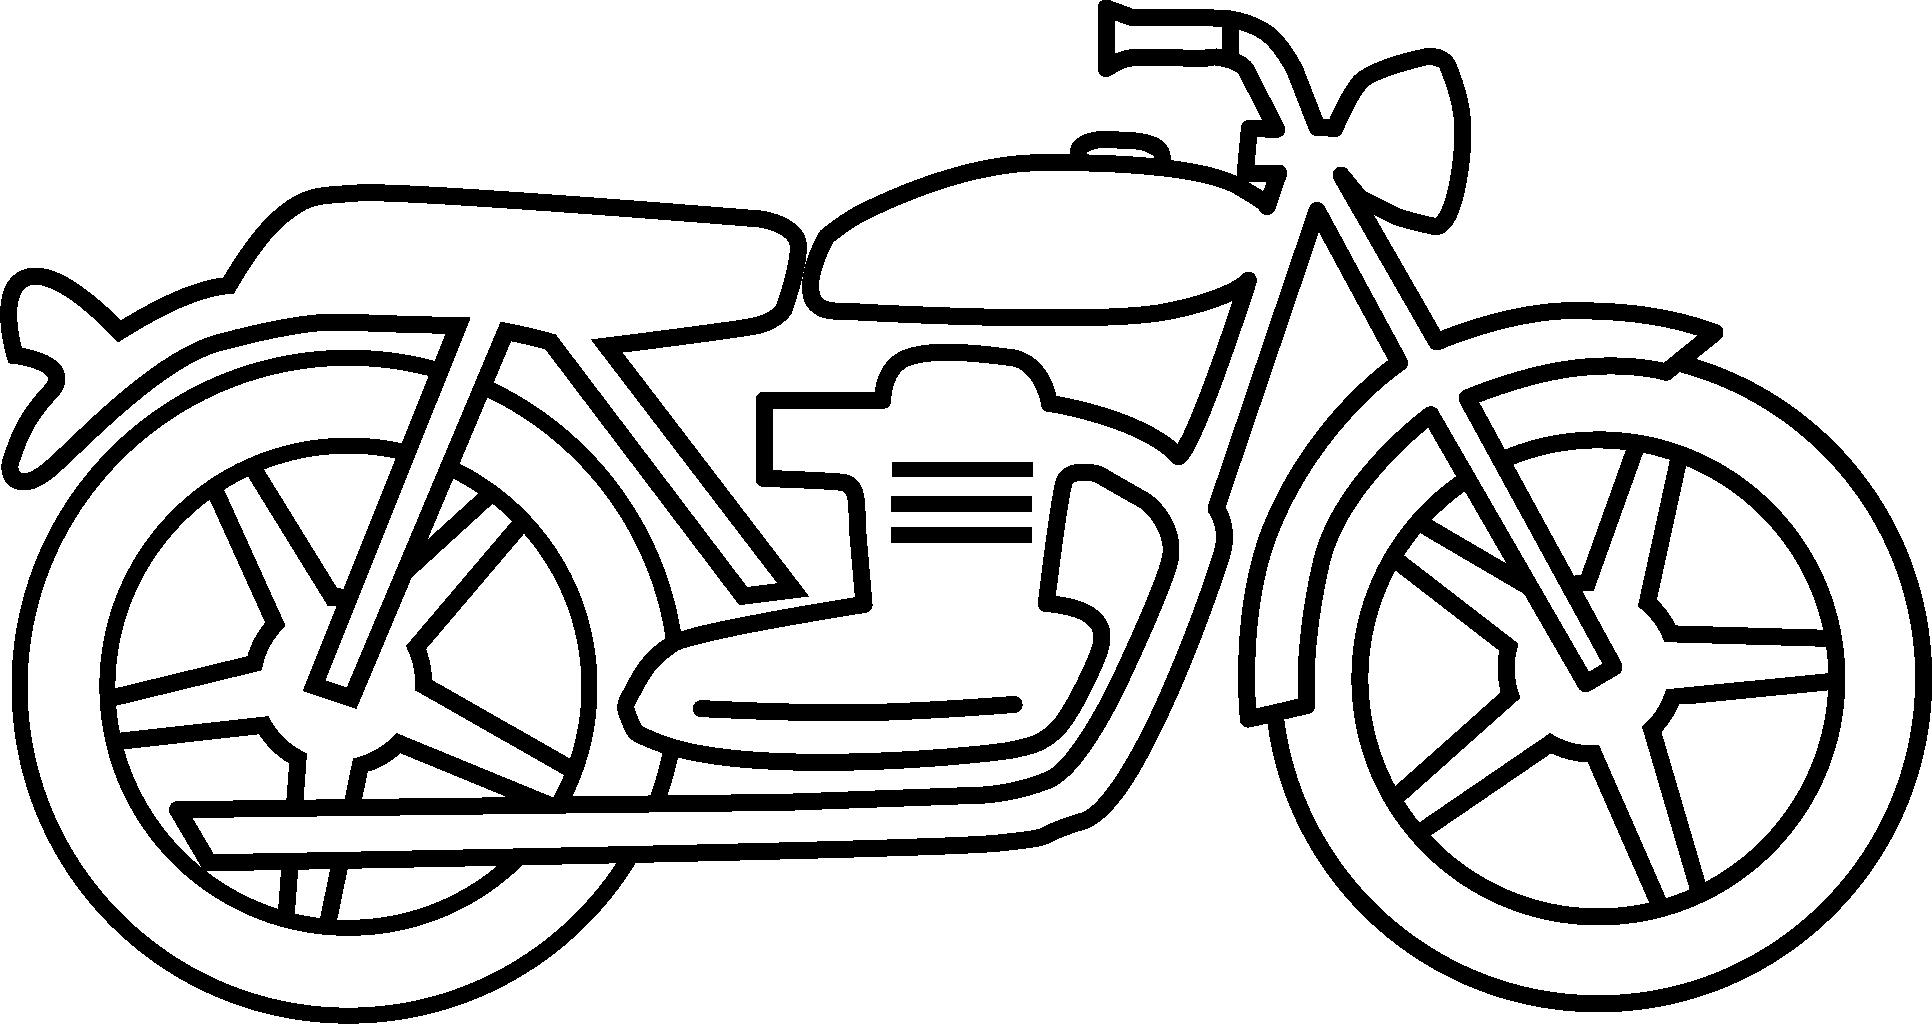 Motorcycle simple drawing at getdrawings free for personal use